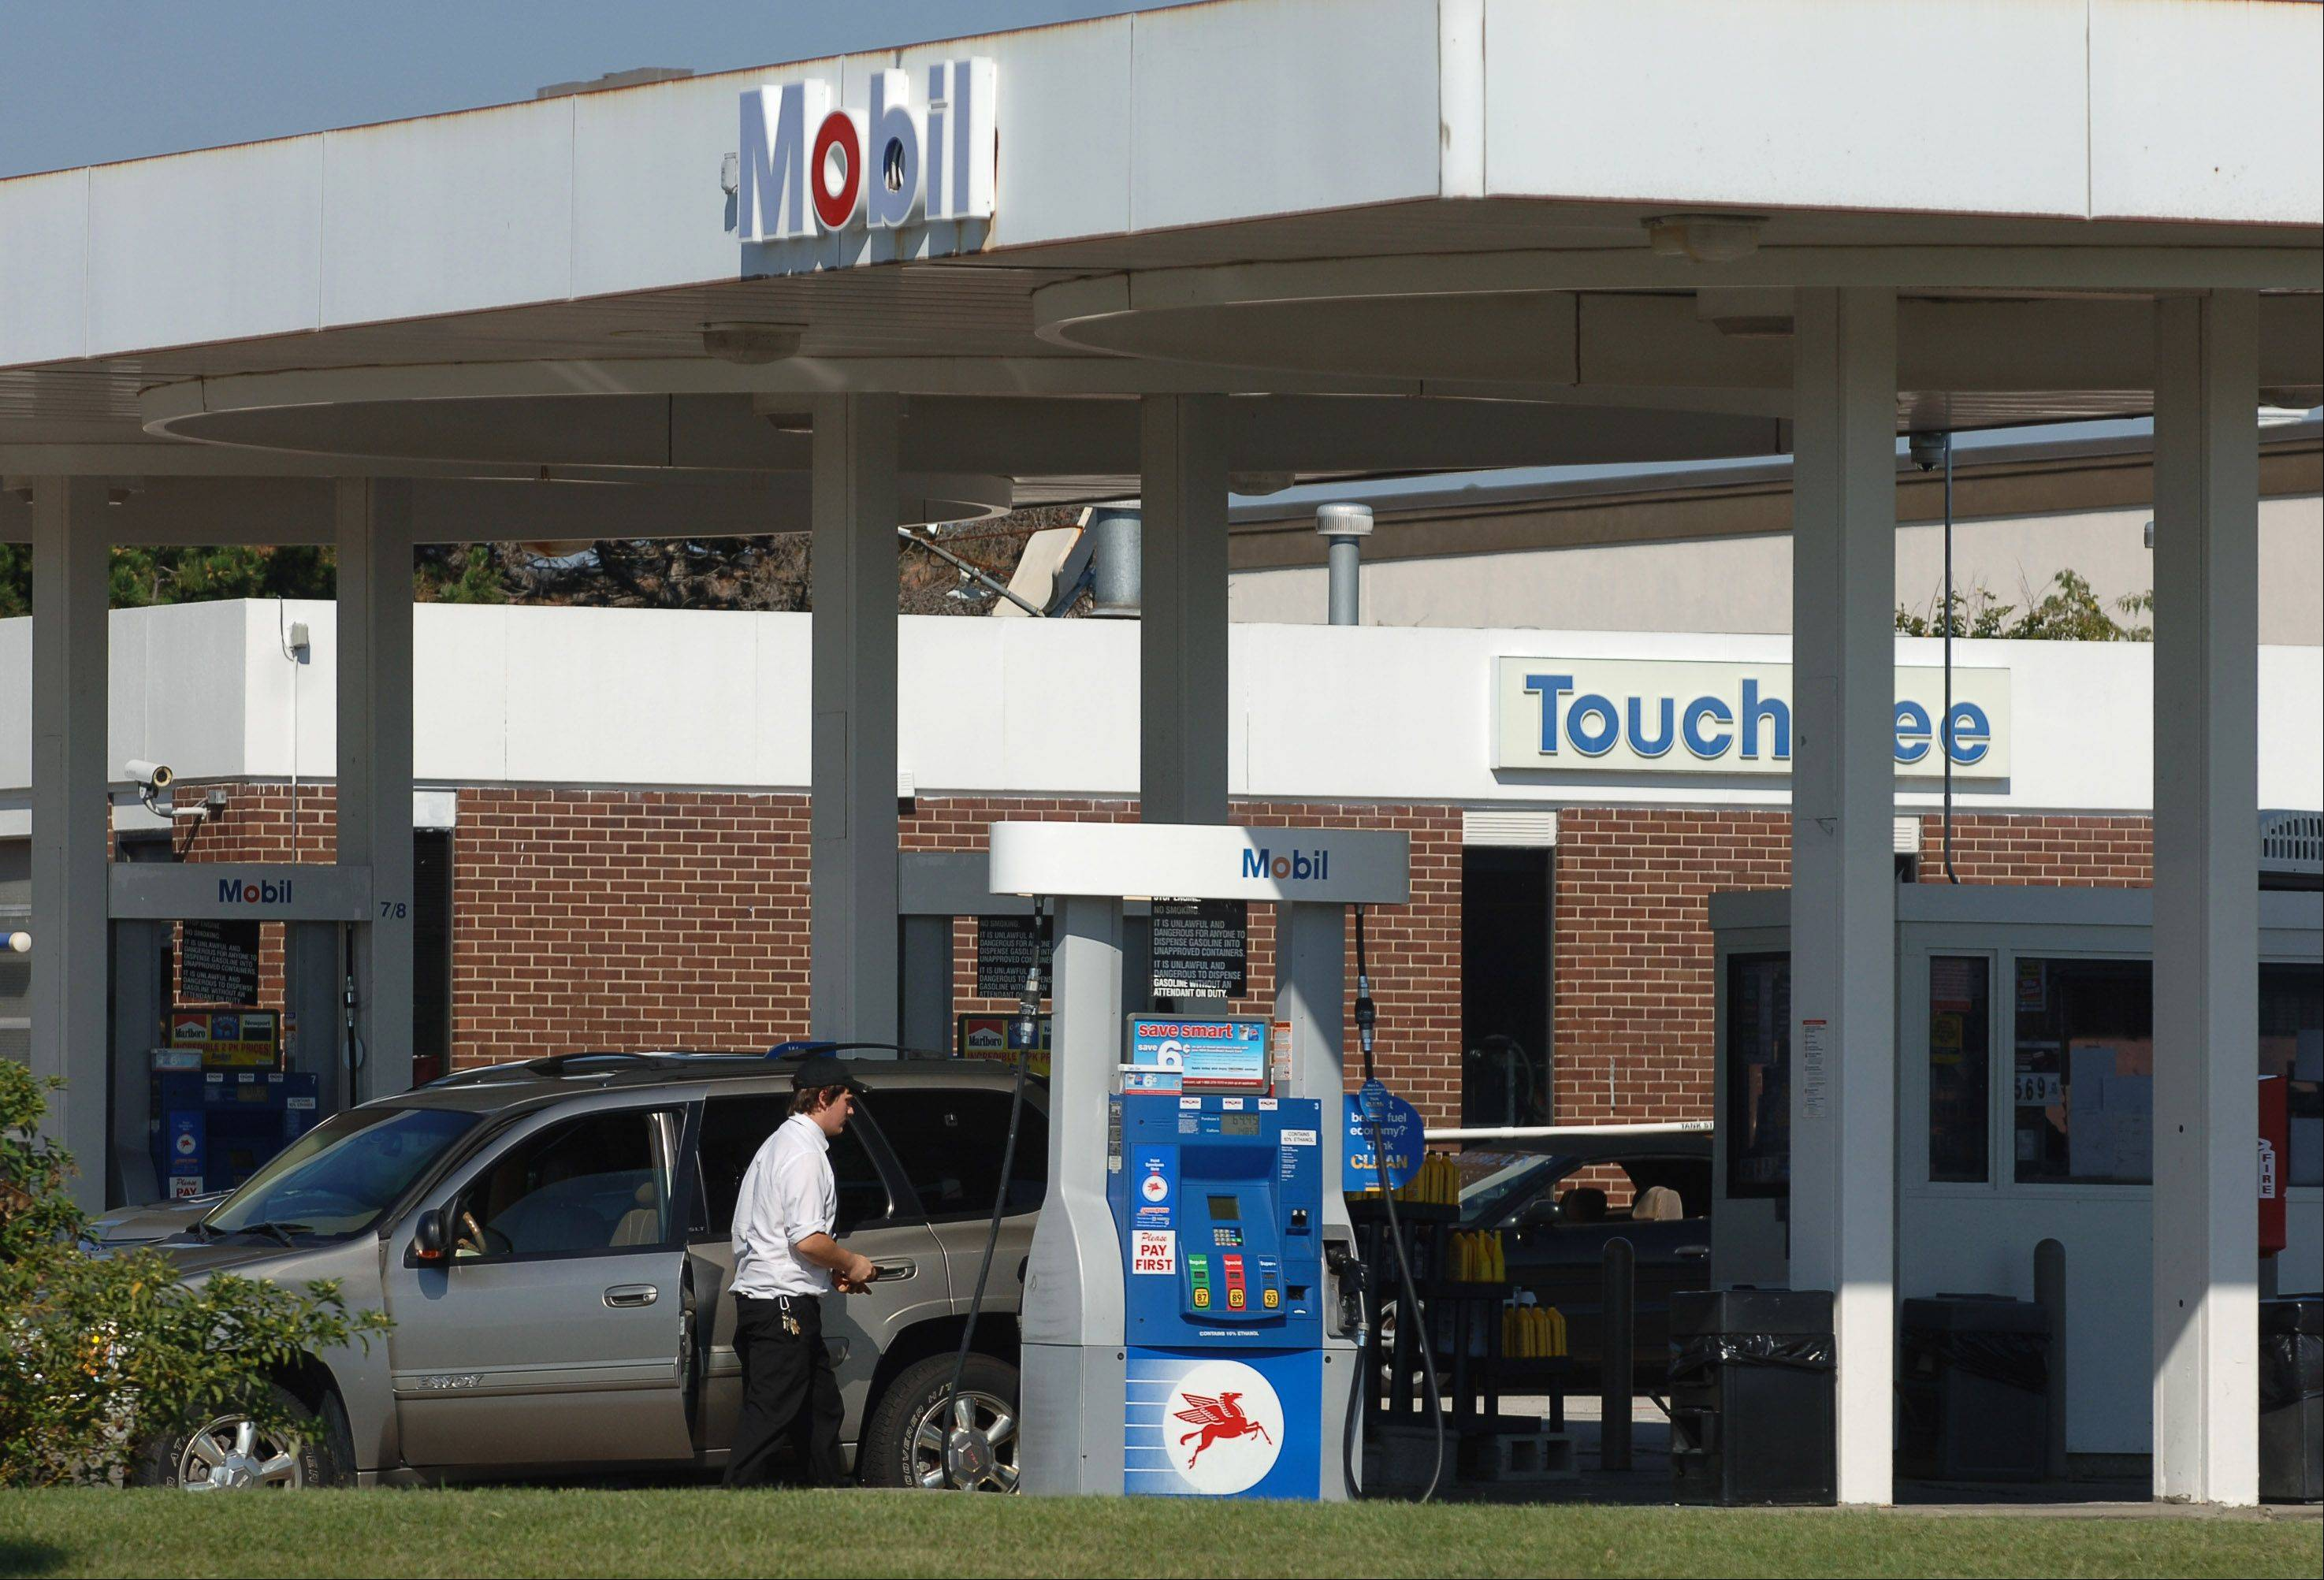 Omaha-based Buchanan Energy plans to demolish the old Mobil gas station on Route 60 in Vernon Hills and replace it with a new station, convenience store and car wash.